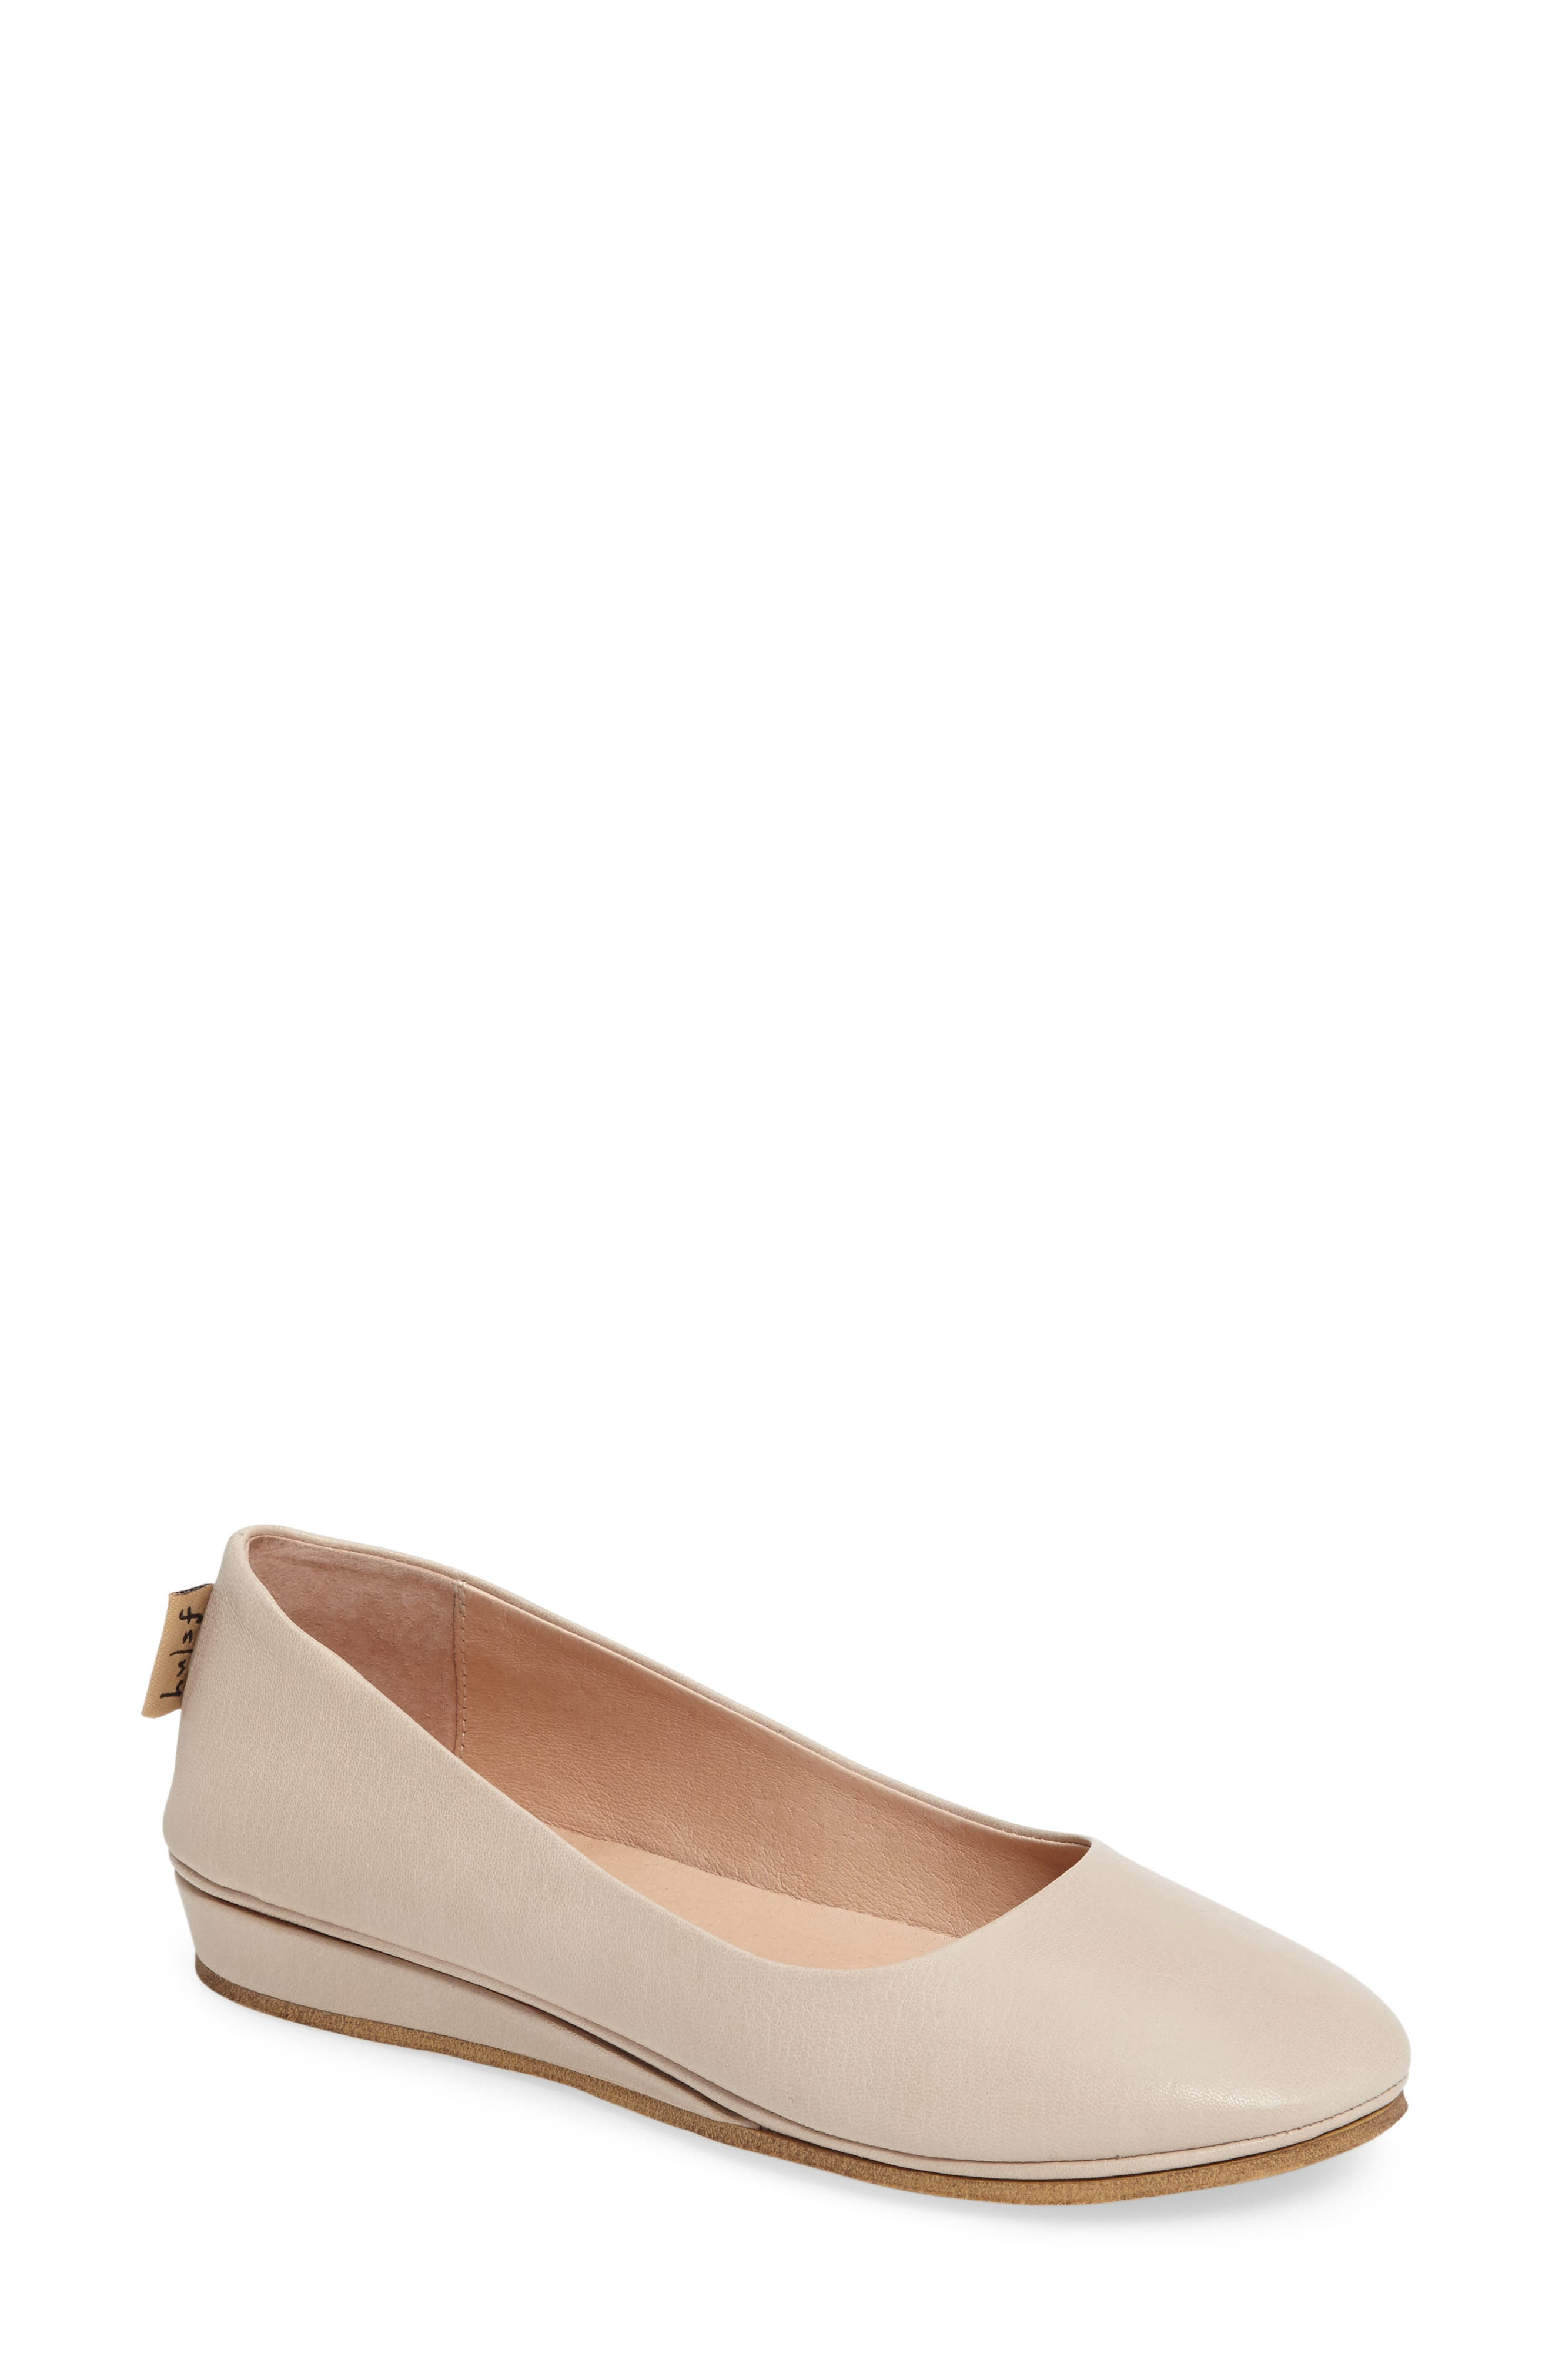 Alternate Image 1 Selected - French Sole 'Zeppa' Wedge